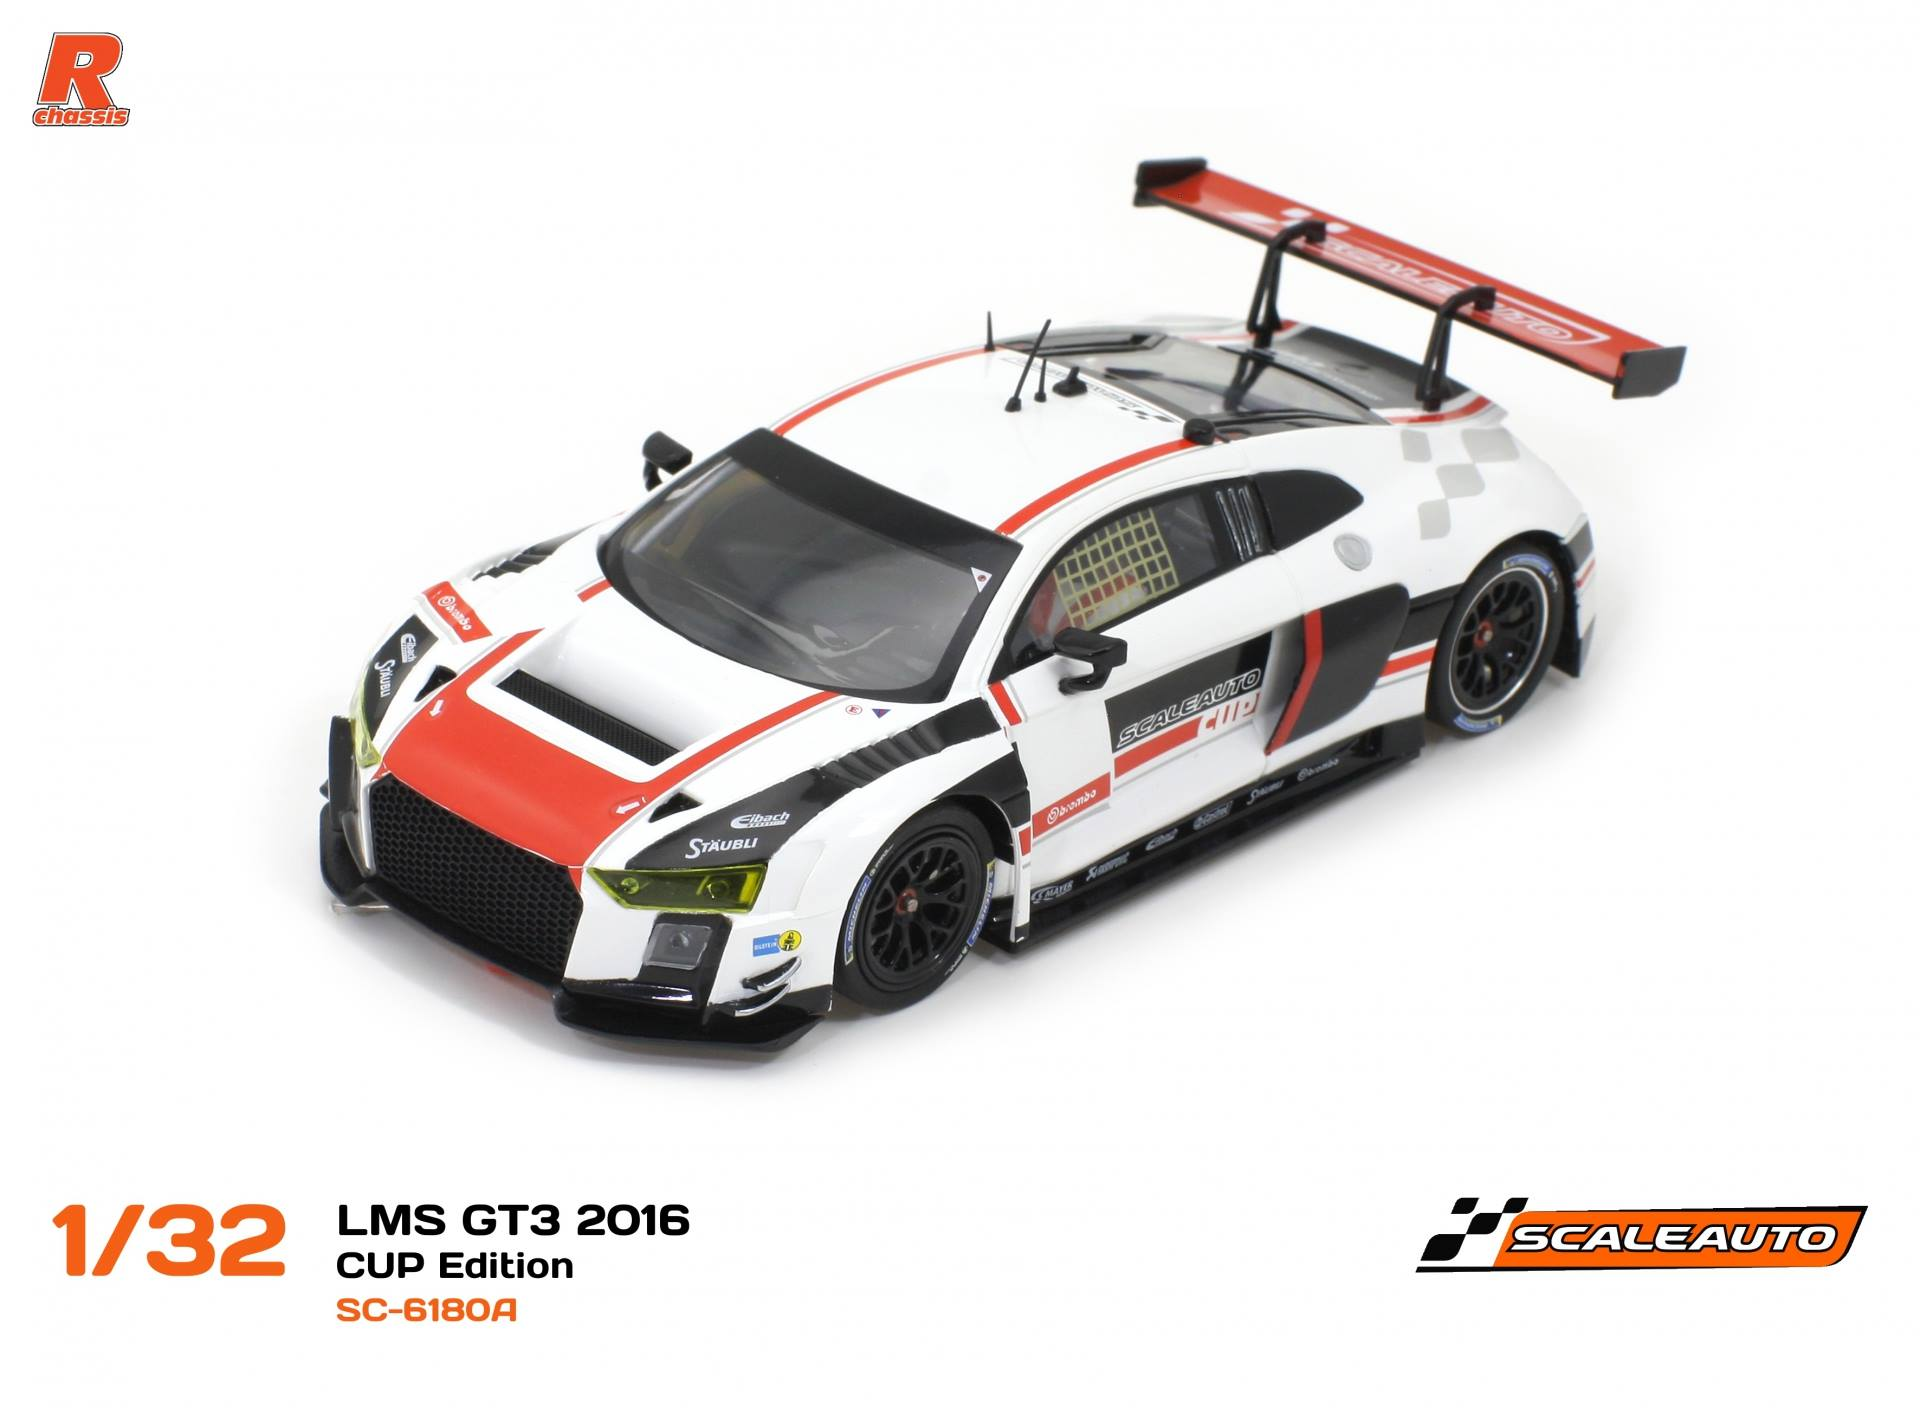 SC-6180 A LMS Gt3 Cup édition blanc / Rouge R-version AW.